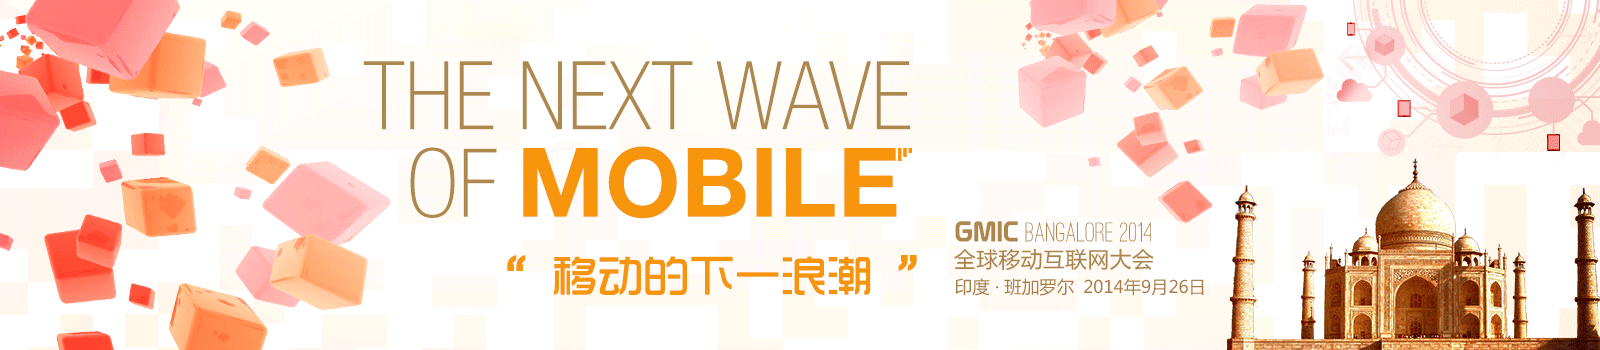 The Next Wave of Mobile Innovation set to hit Bangalore at GMIC 2014